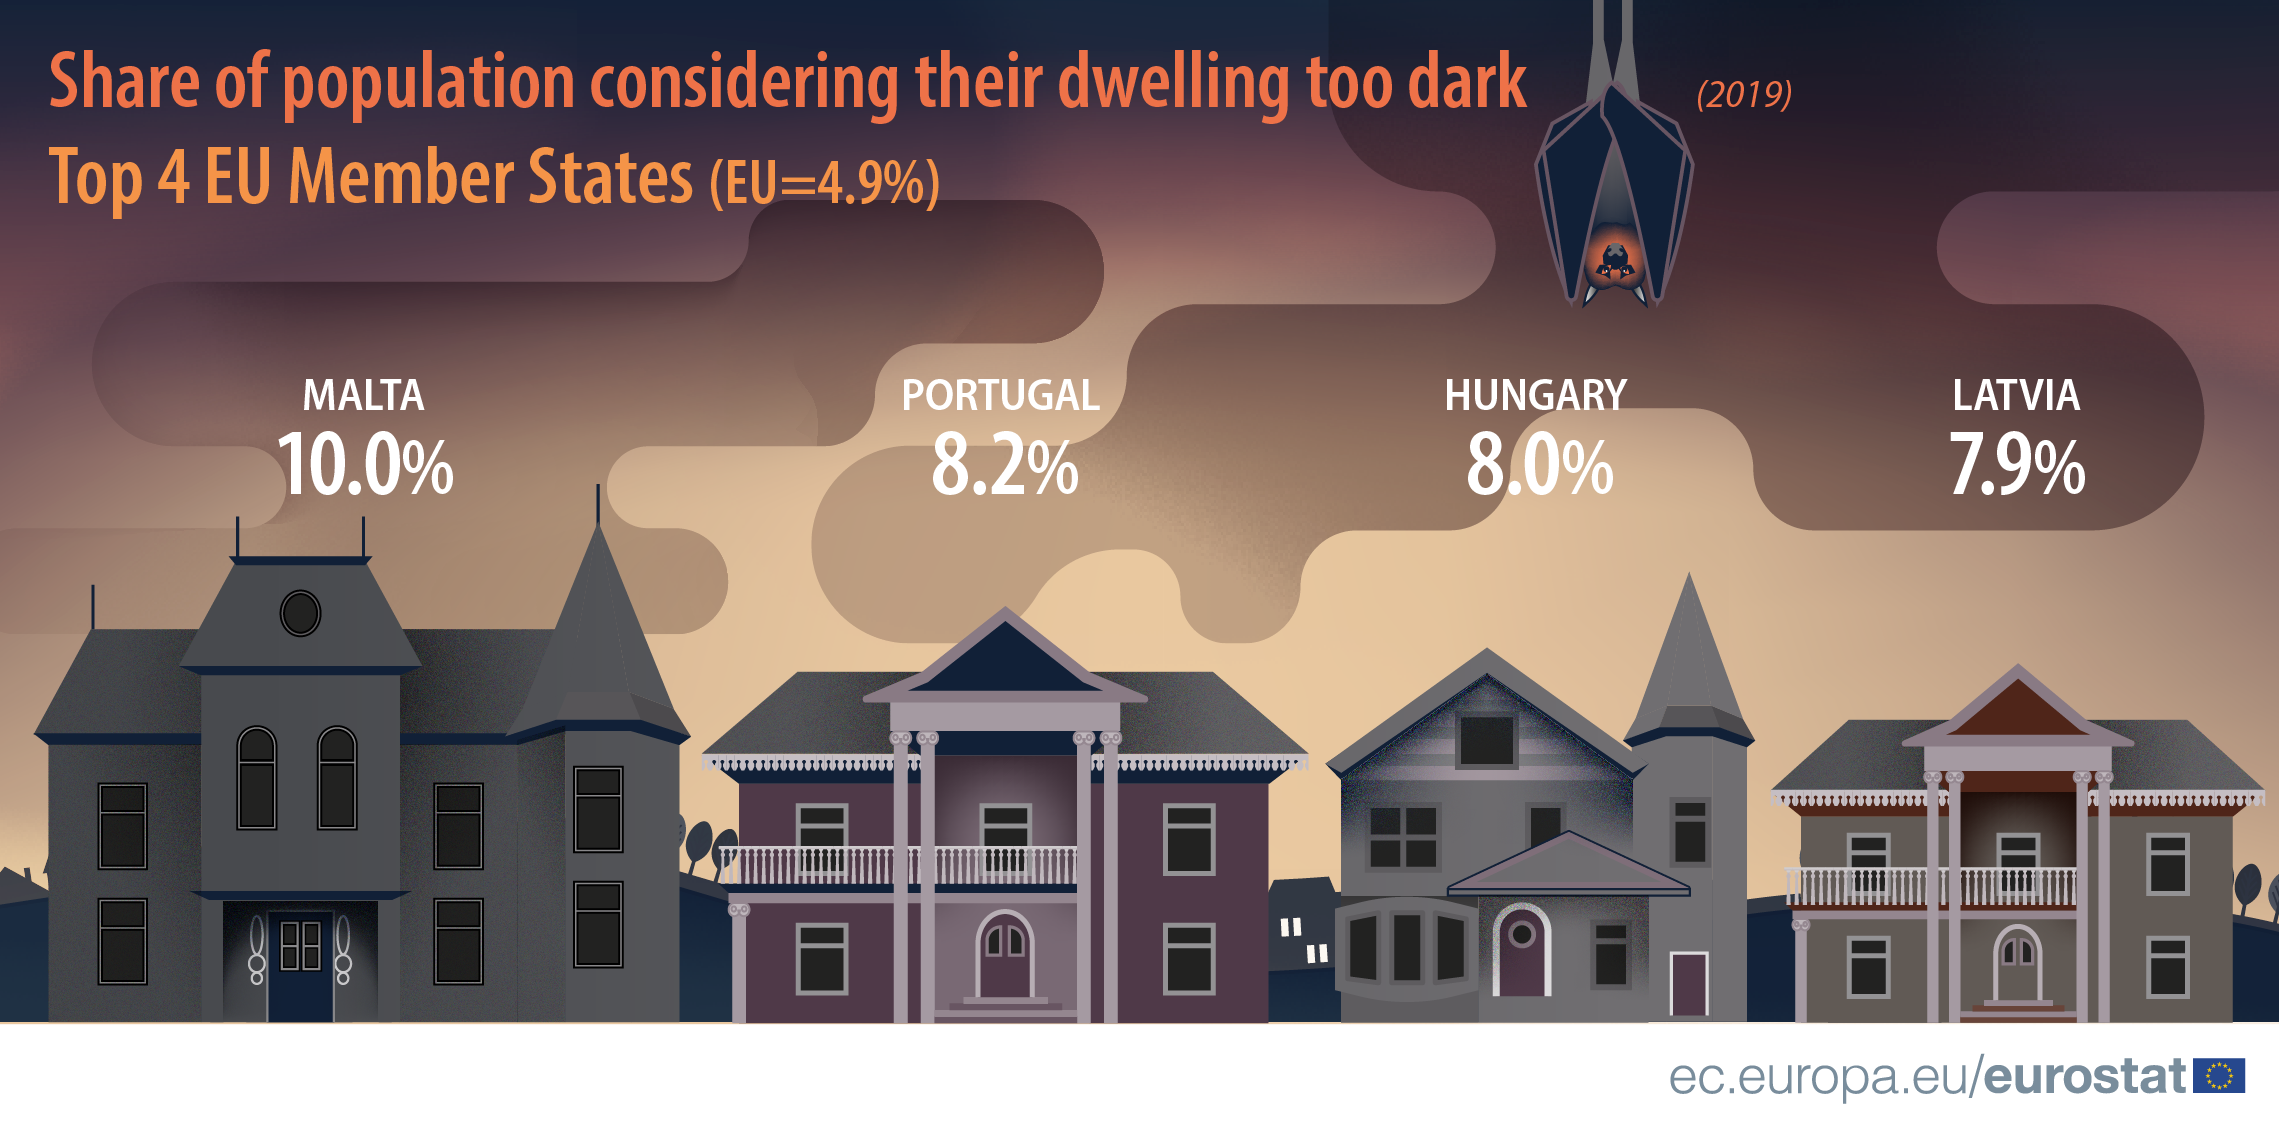 Infographic: Share of population considering their dwelling too dark top 4